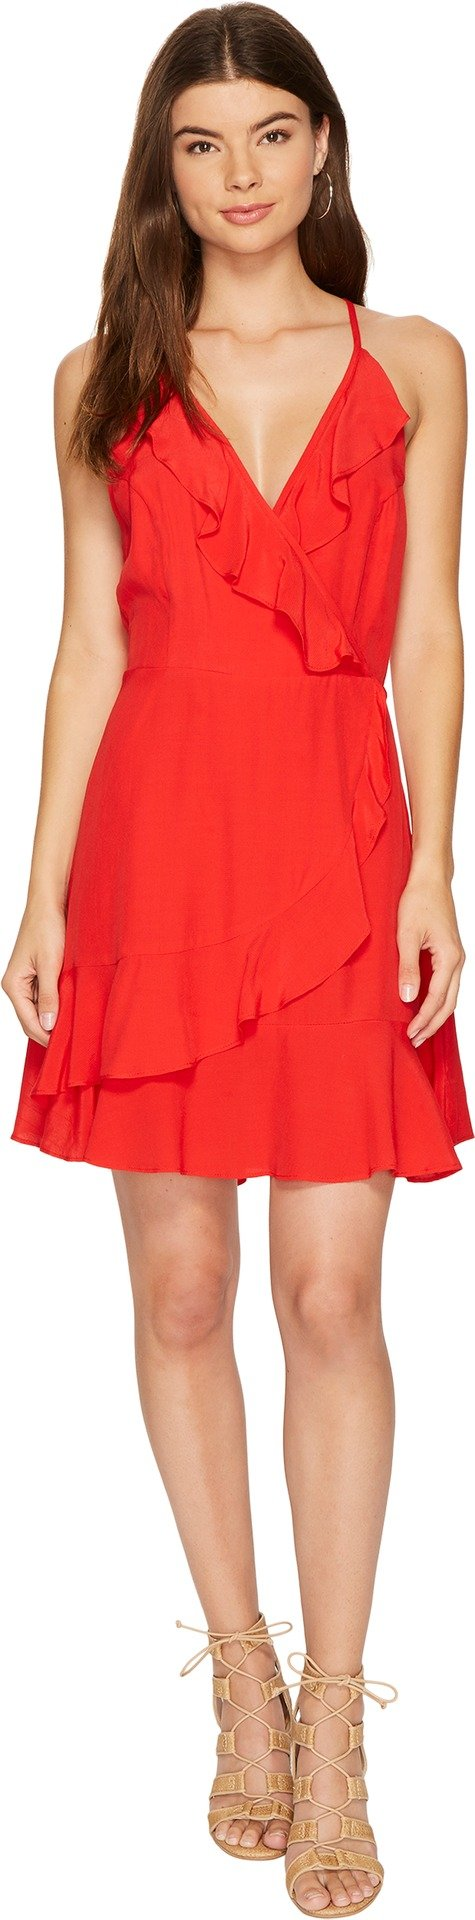 Lucy Love Women's Up All Night Dress Hot Tamale Dress by Lucy Love (Image #1)